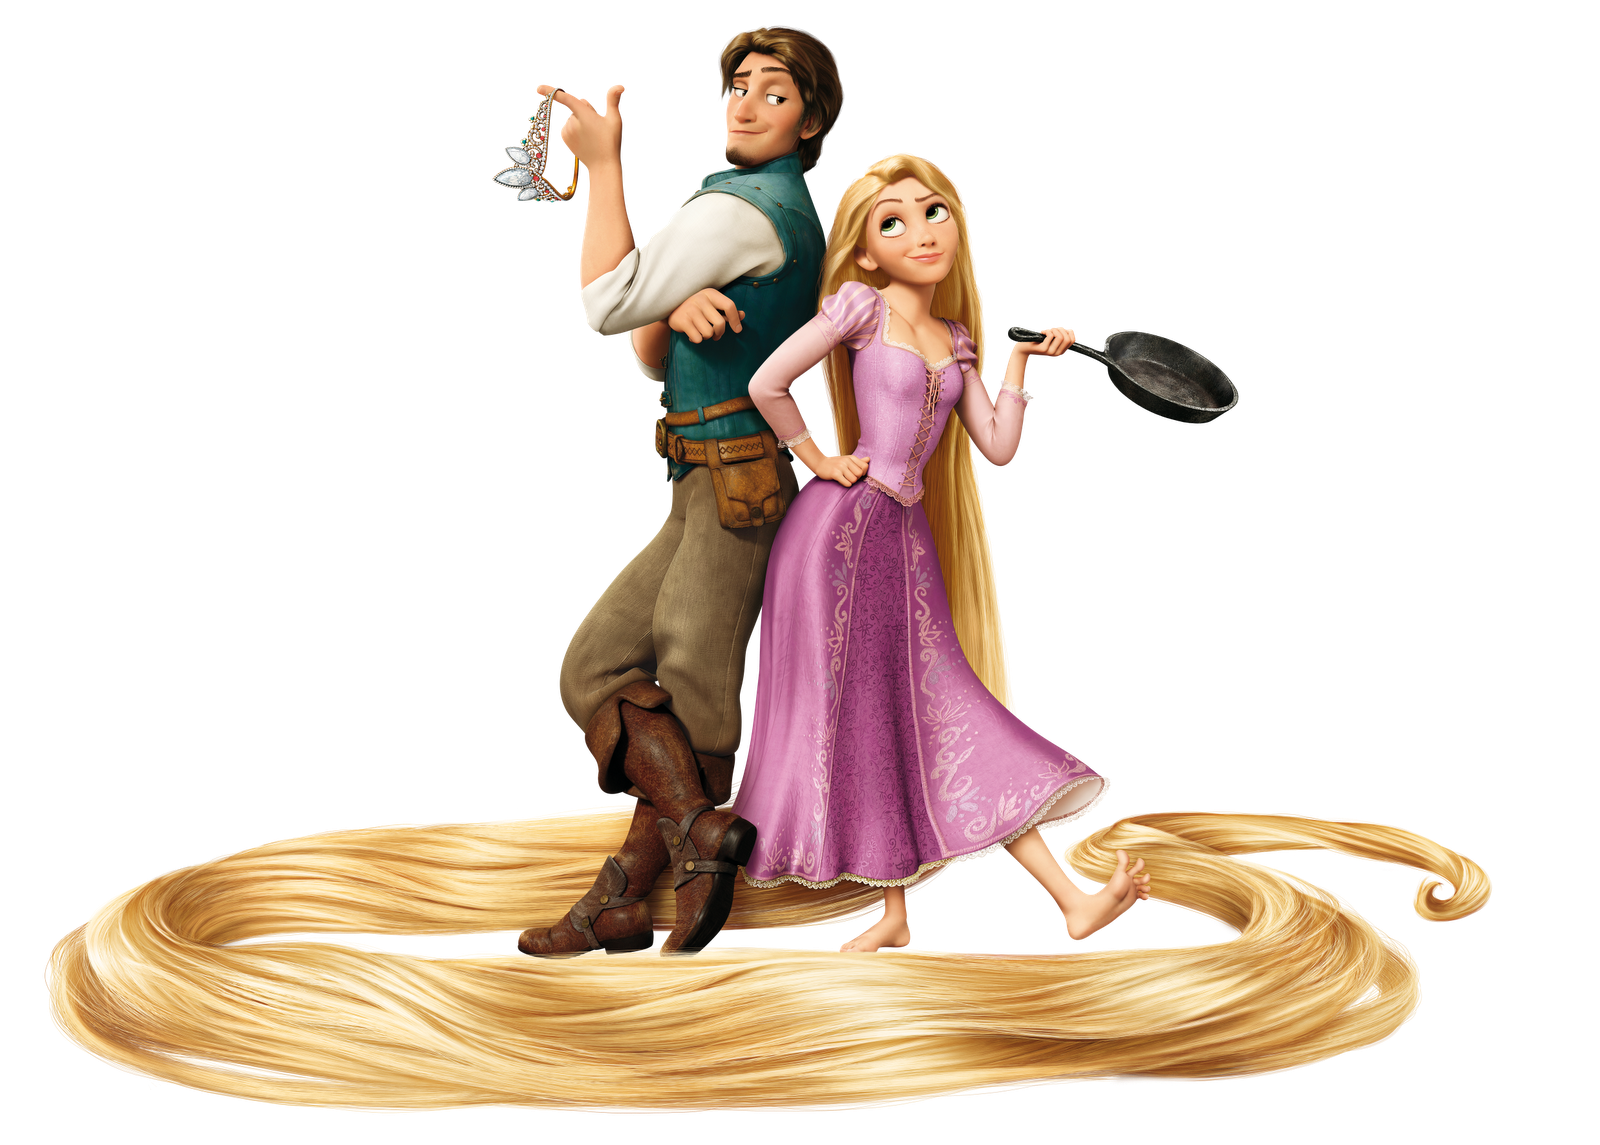 Gold Girl And Man Disney Pascal Pictures 2155